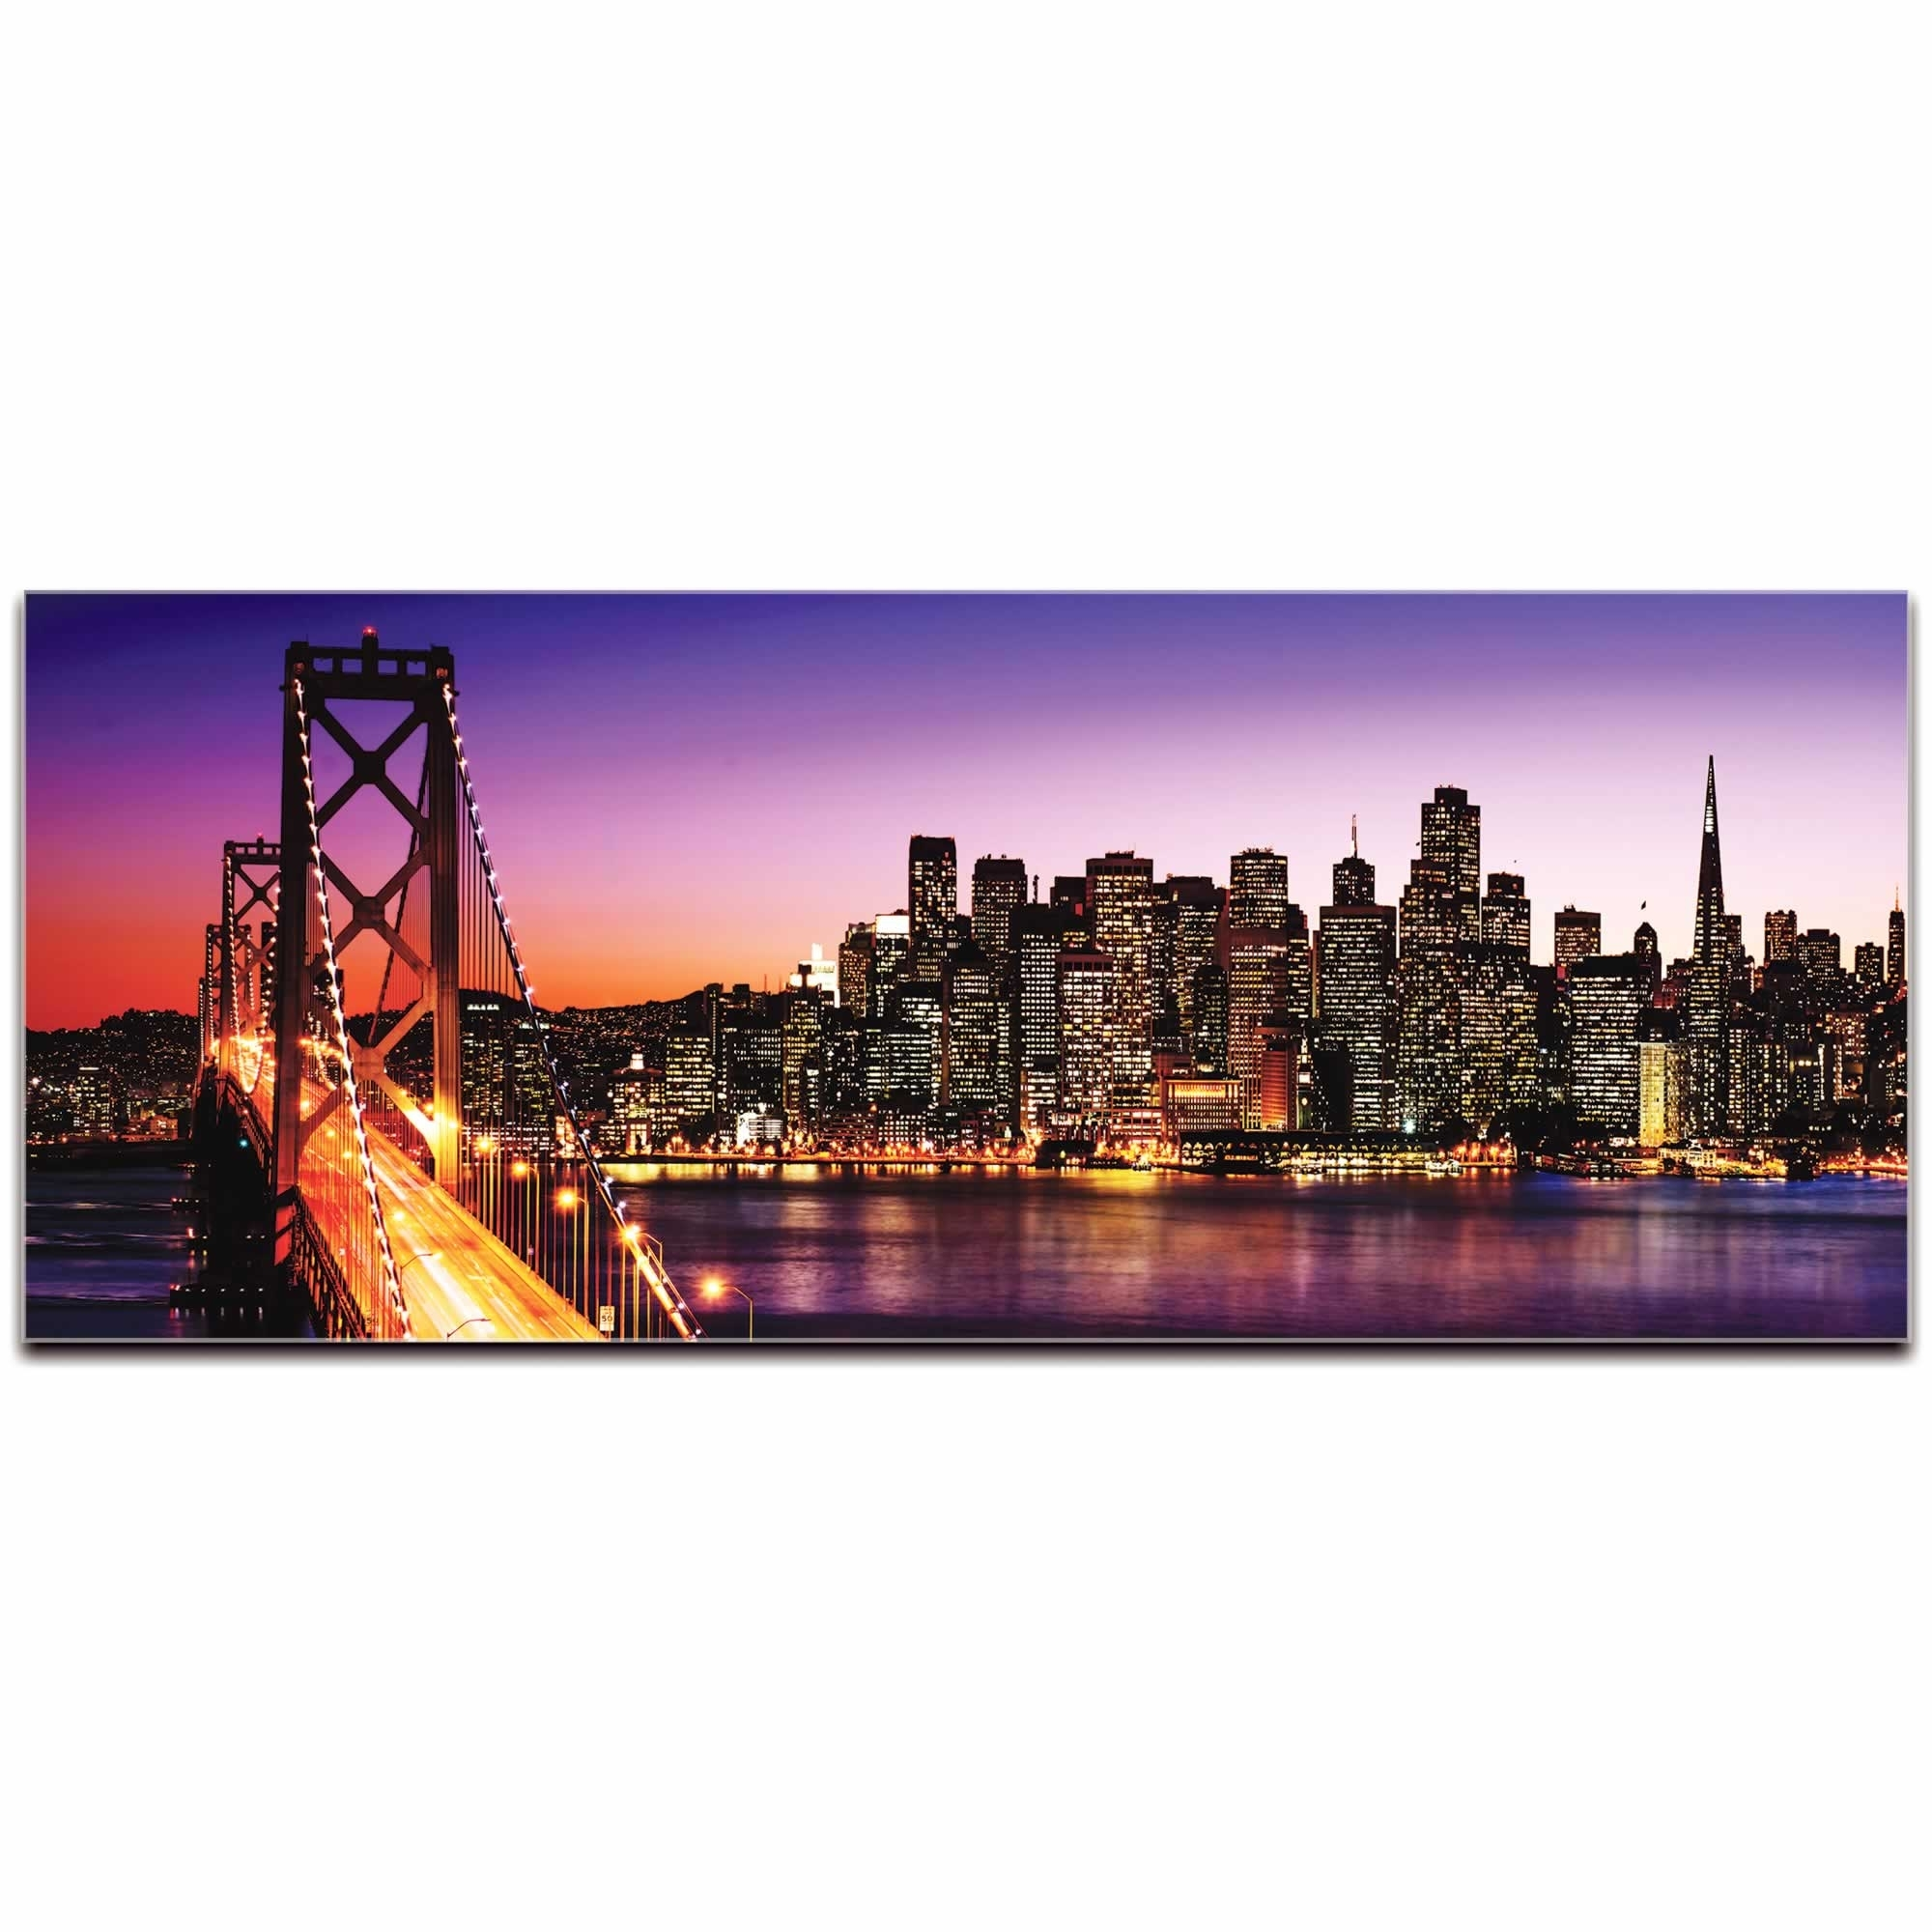 Metal Art Studio – San Francisco City Skyline | Urban Modern Art Regarding Most Current San Francisco Wall Art (View 9 of 20)